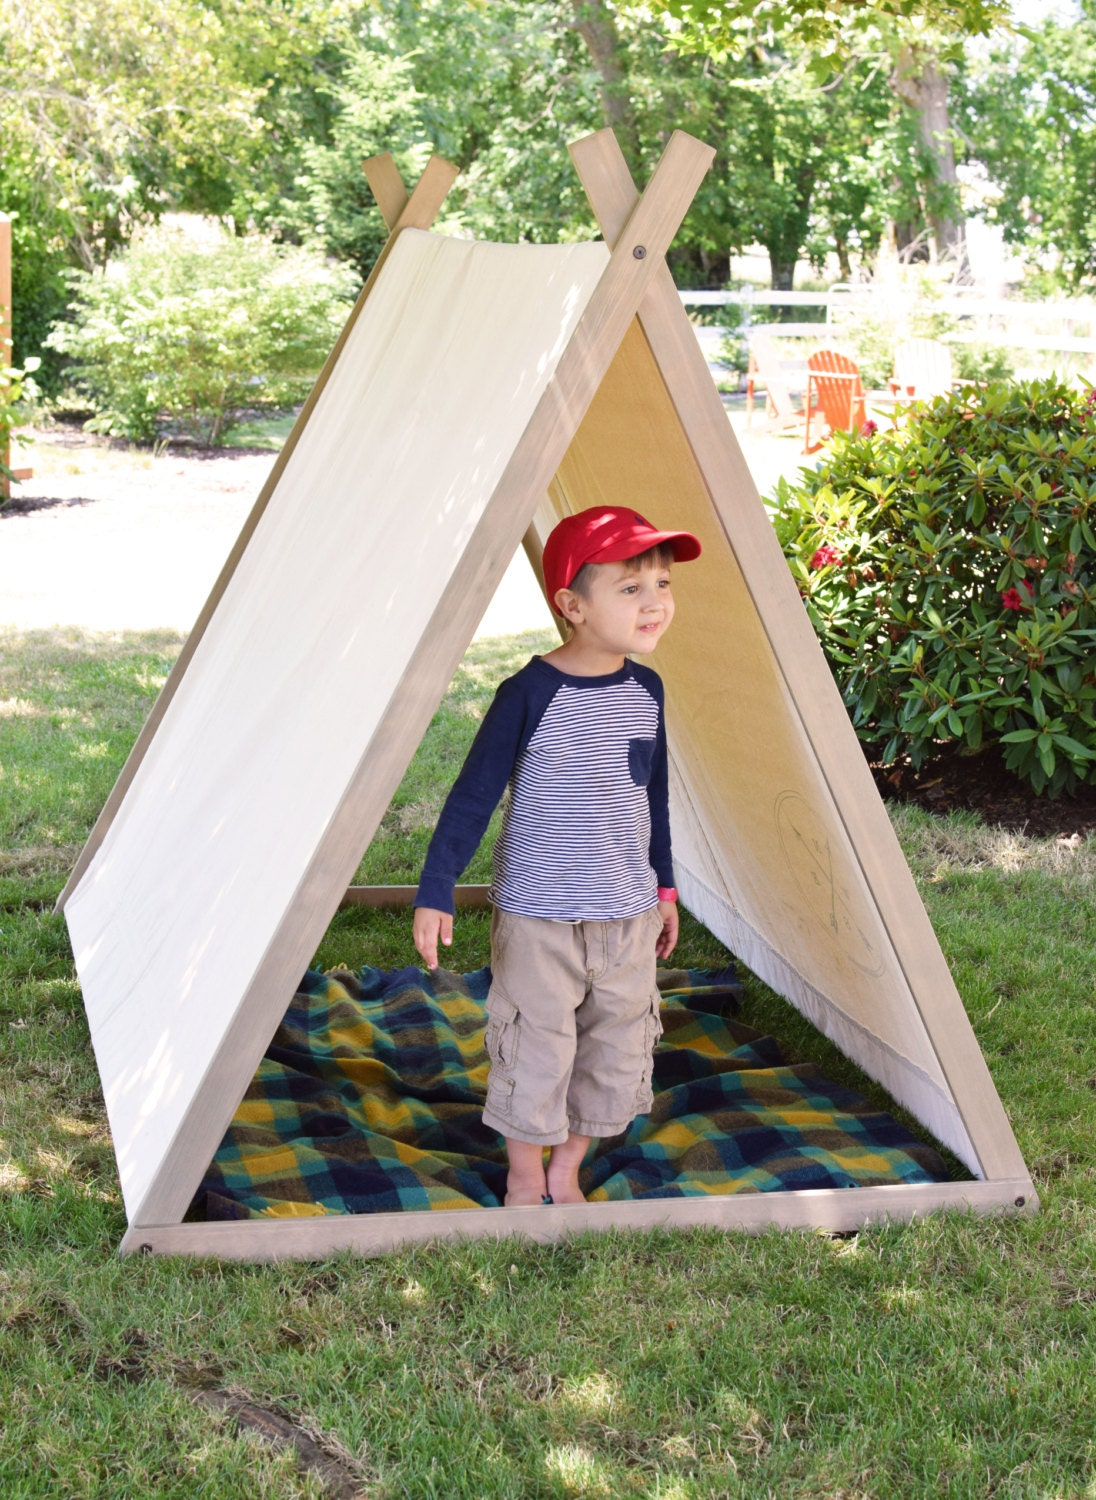 Grand expedition tent a frame tent play tent teepee lawn for Build your own canvas tent